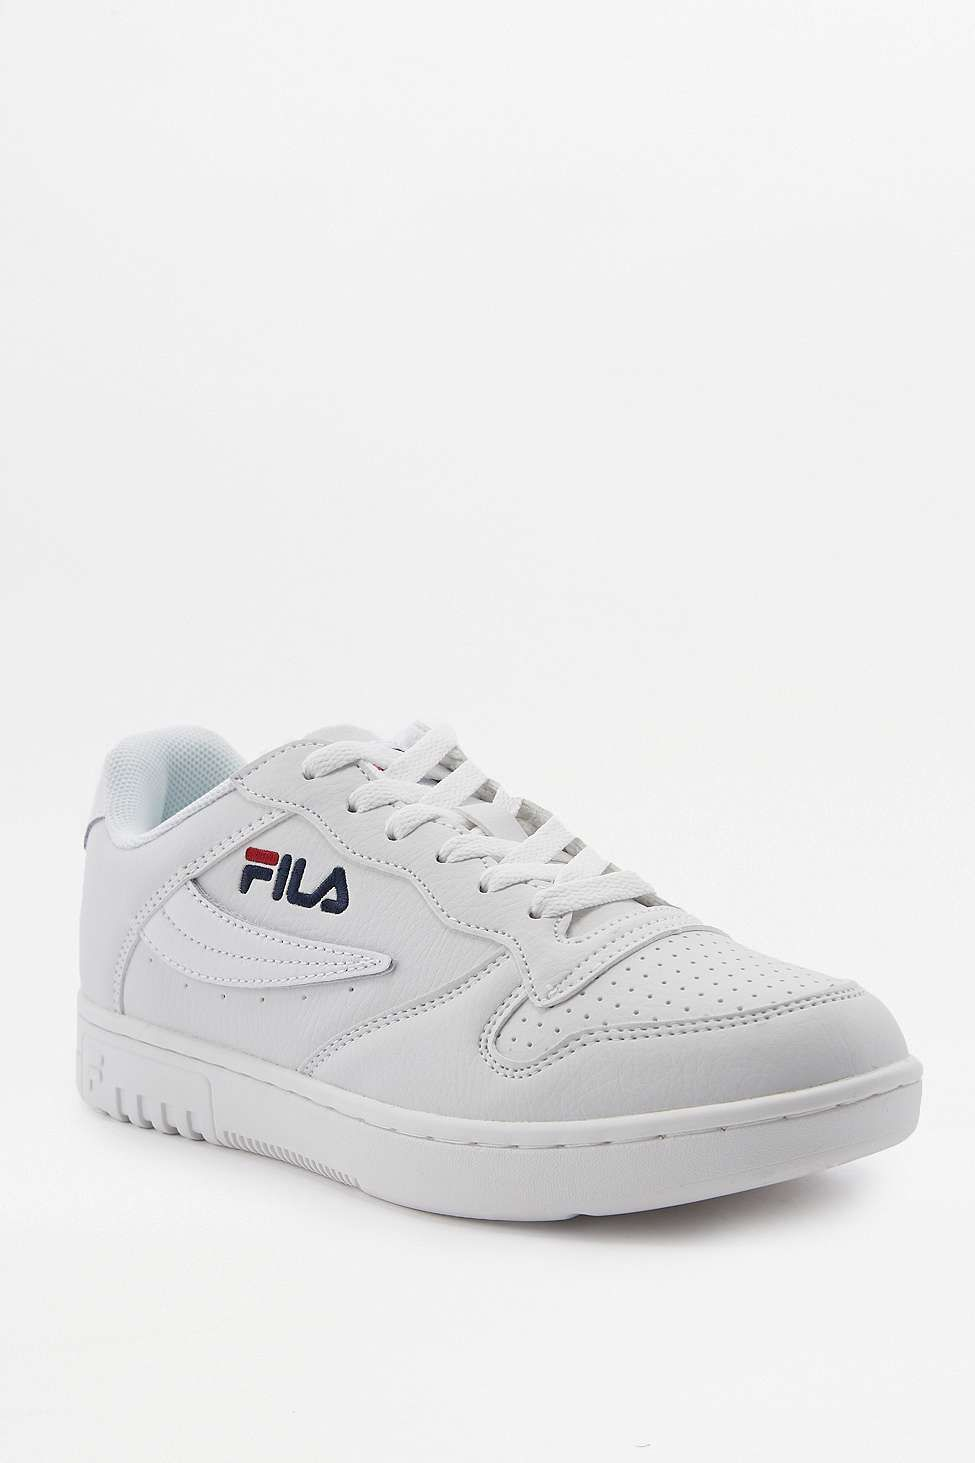 ac9292861f71 Fila FX-100 White Low Top Trainers